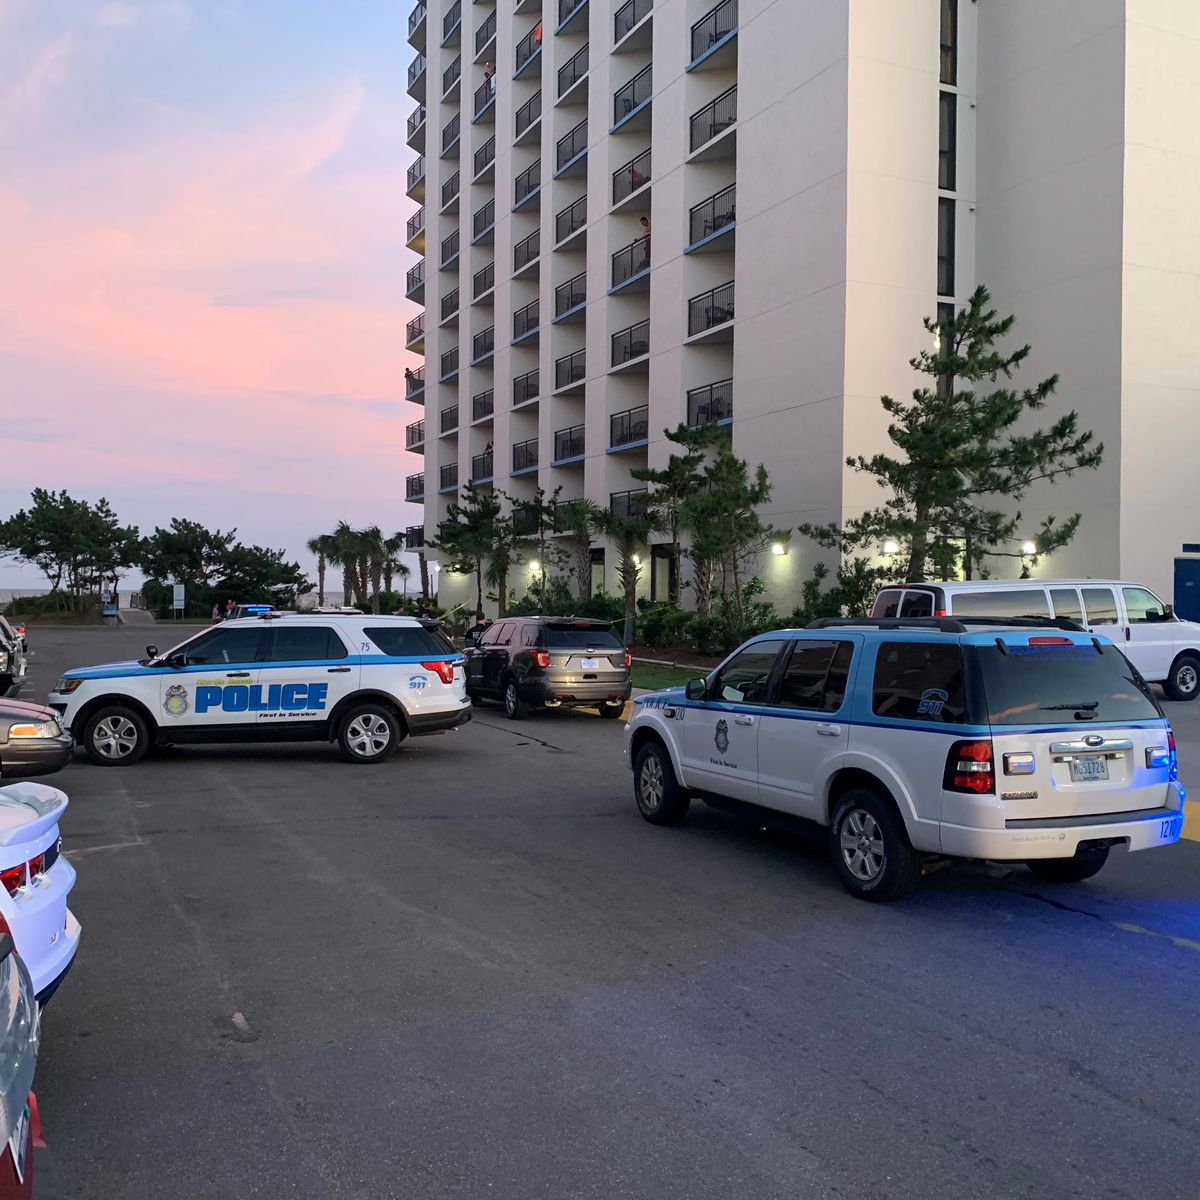 Police: 22-year-old dies after falling from Ocean Boulevard hotel balcony